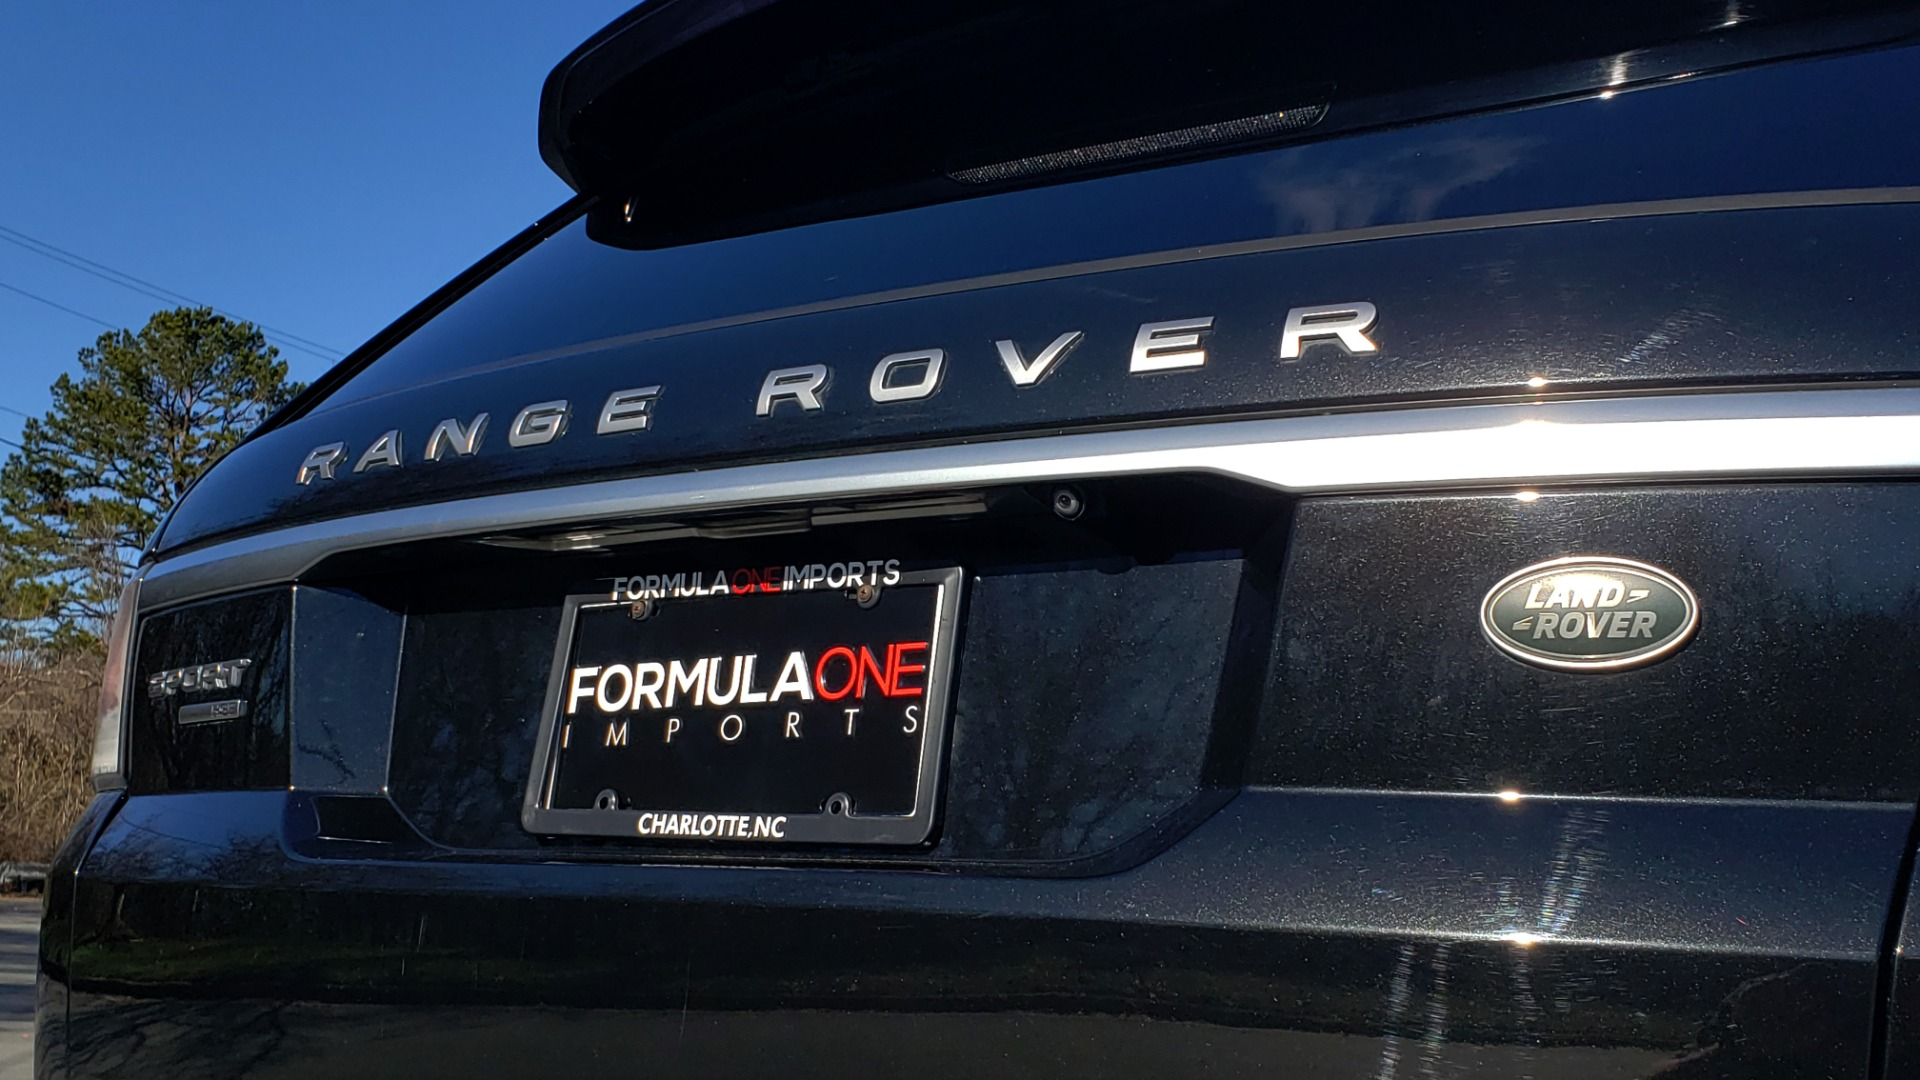 Used 2015 Land Rover RANGE ROVER HSE / 3.0L SC V6 / 8-SPD AUTO / NAV / PANO ROOF / REARVIEW for sale Sold at Formula Imports in Charlotte NC 28227 36